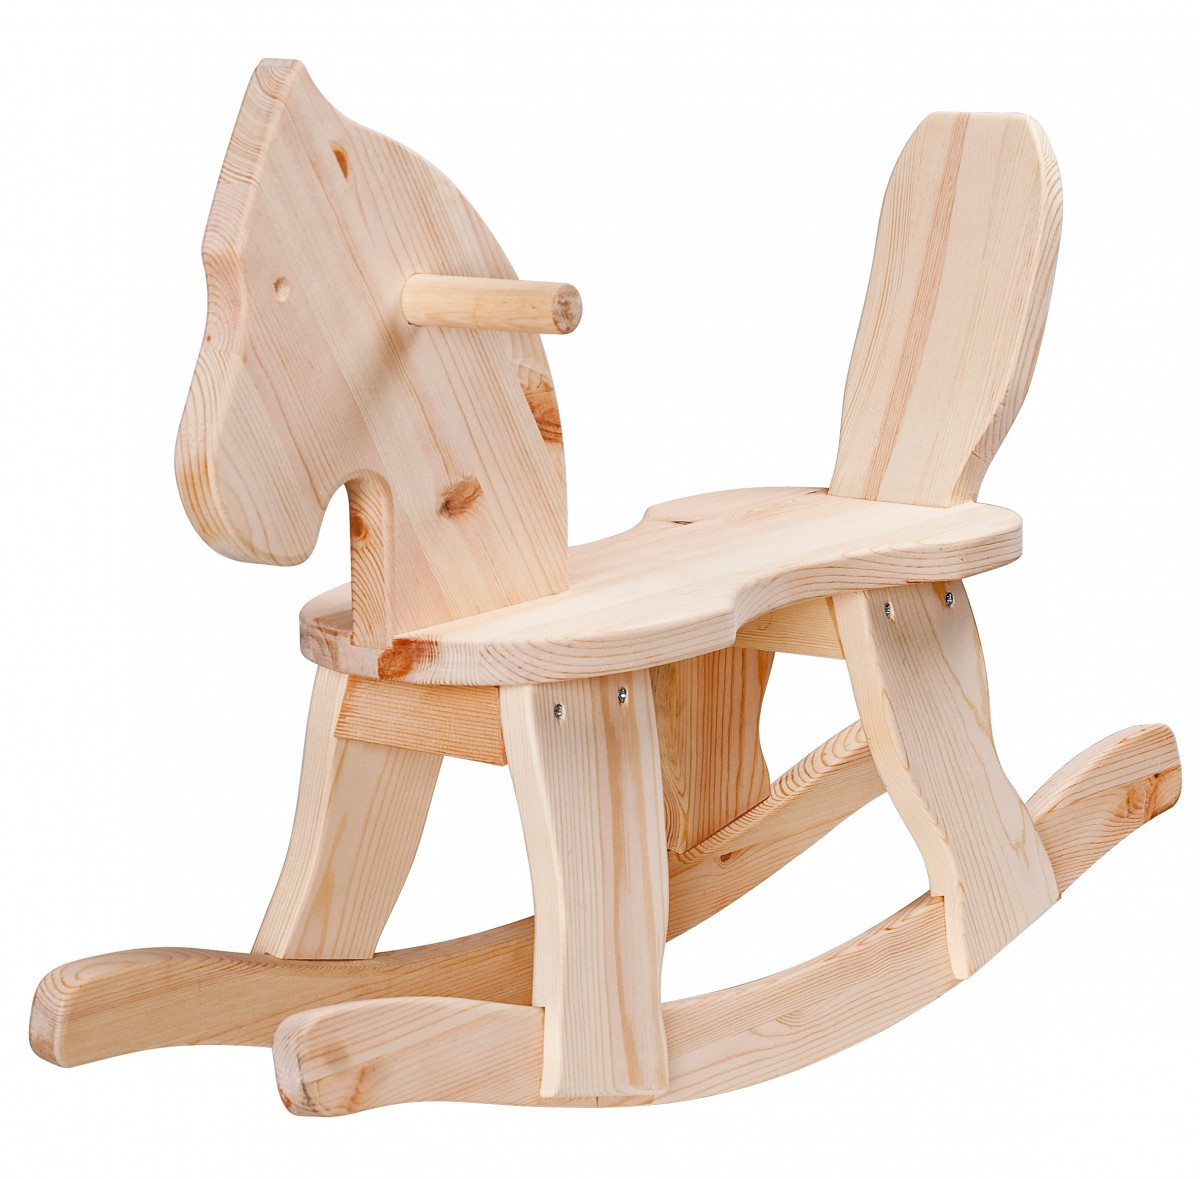 How To Build A Child S Rocking Horse